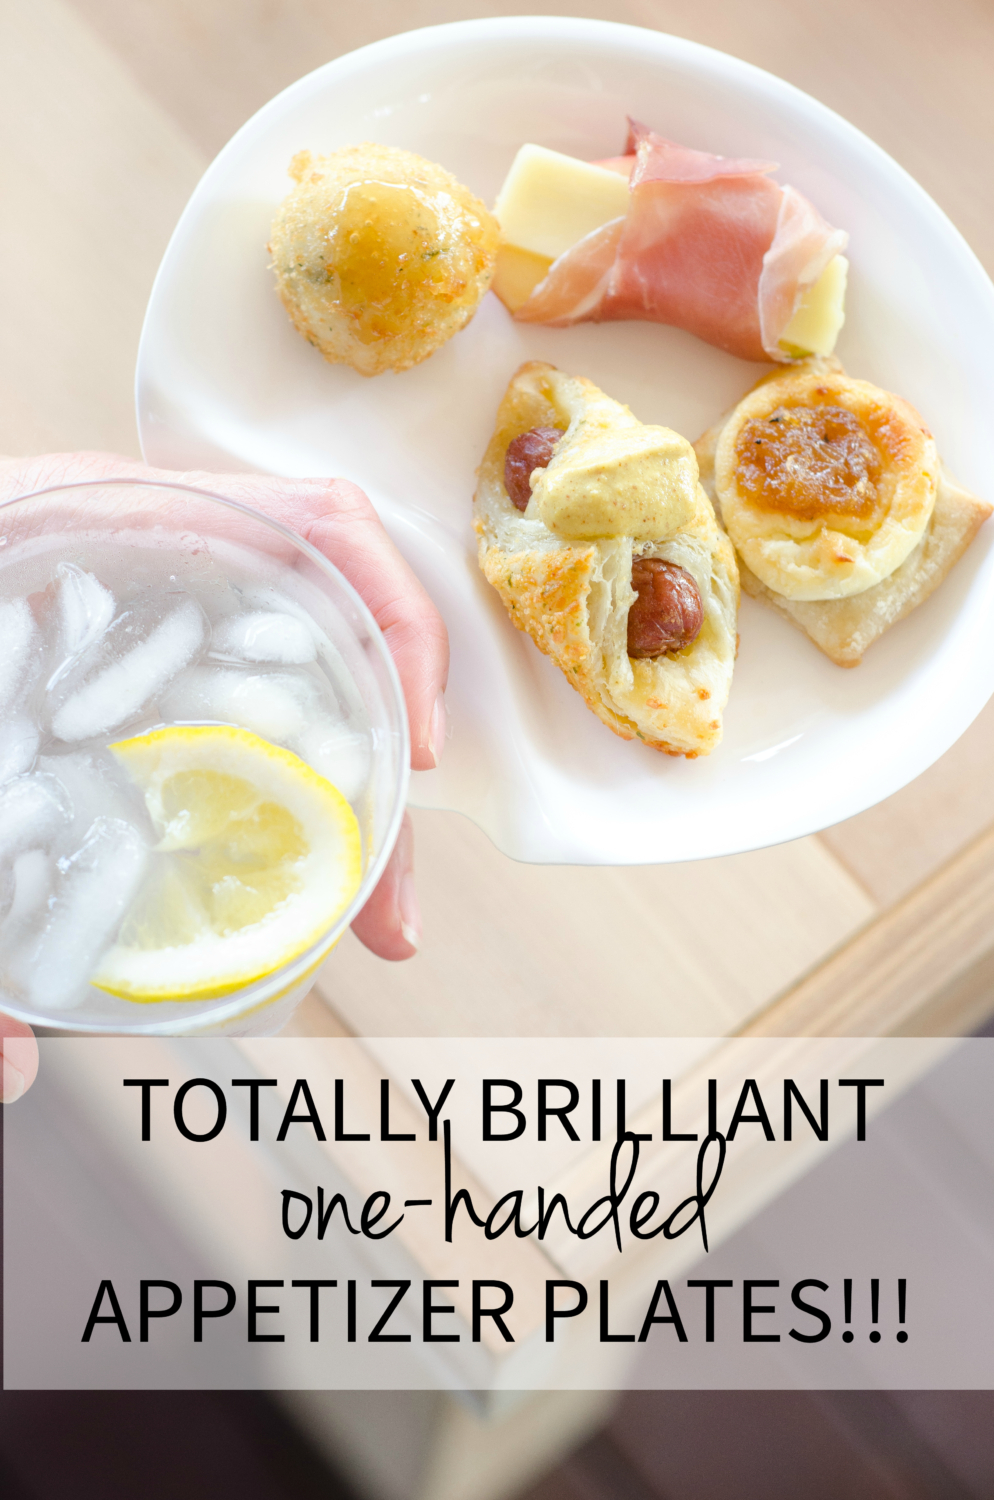 The most amazing thing to happen to your next cocktail party - appetizer plates that can be held in one hand with a drink, leaving you with a free hand for actually eating!! #ad